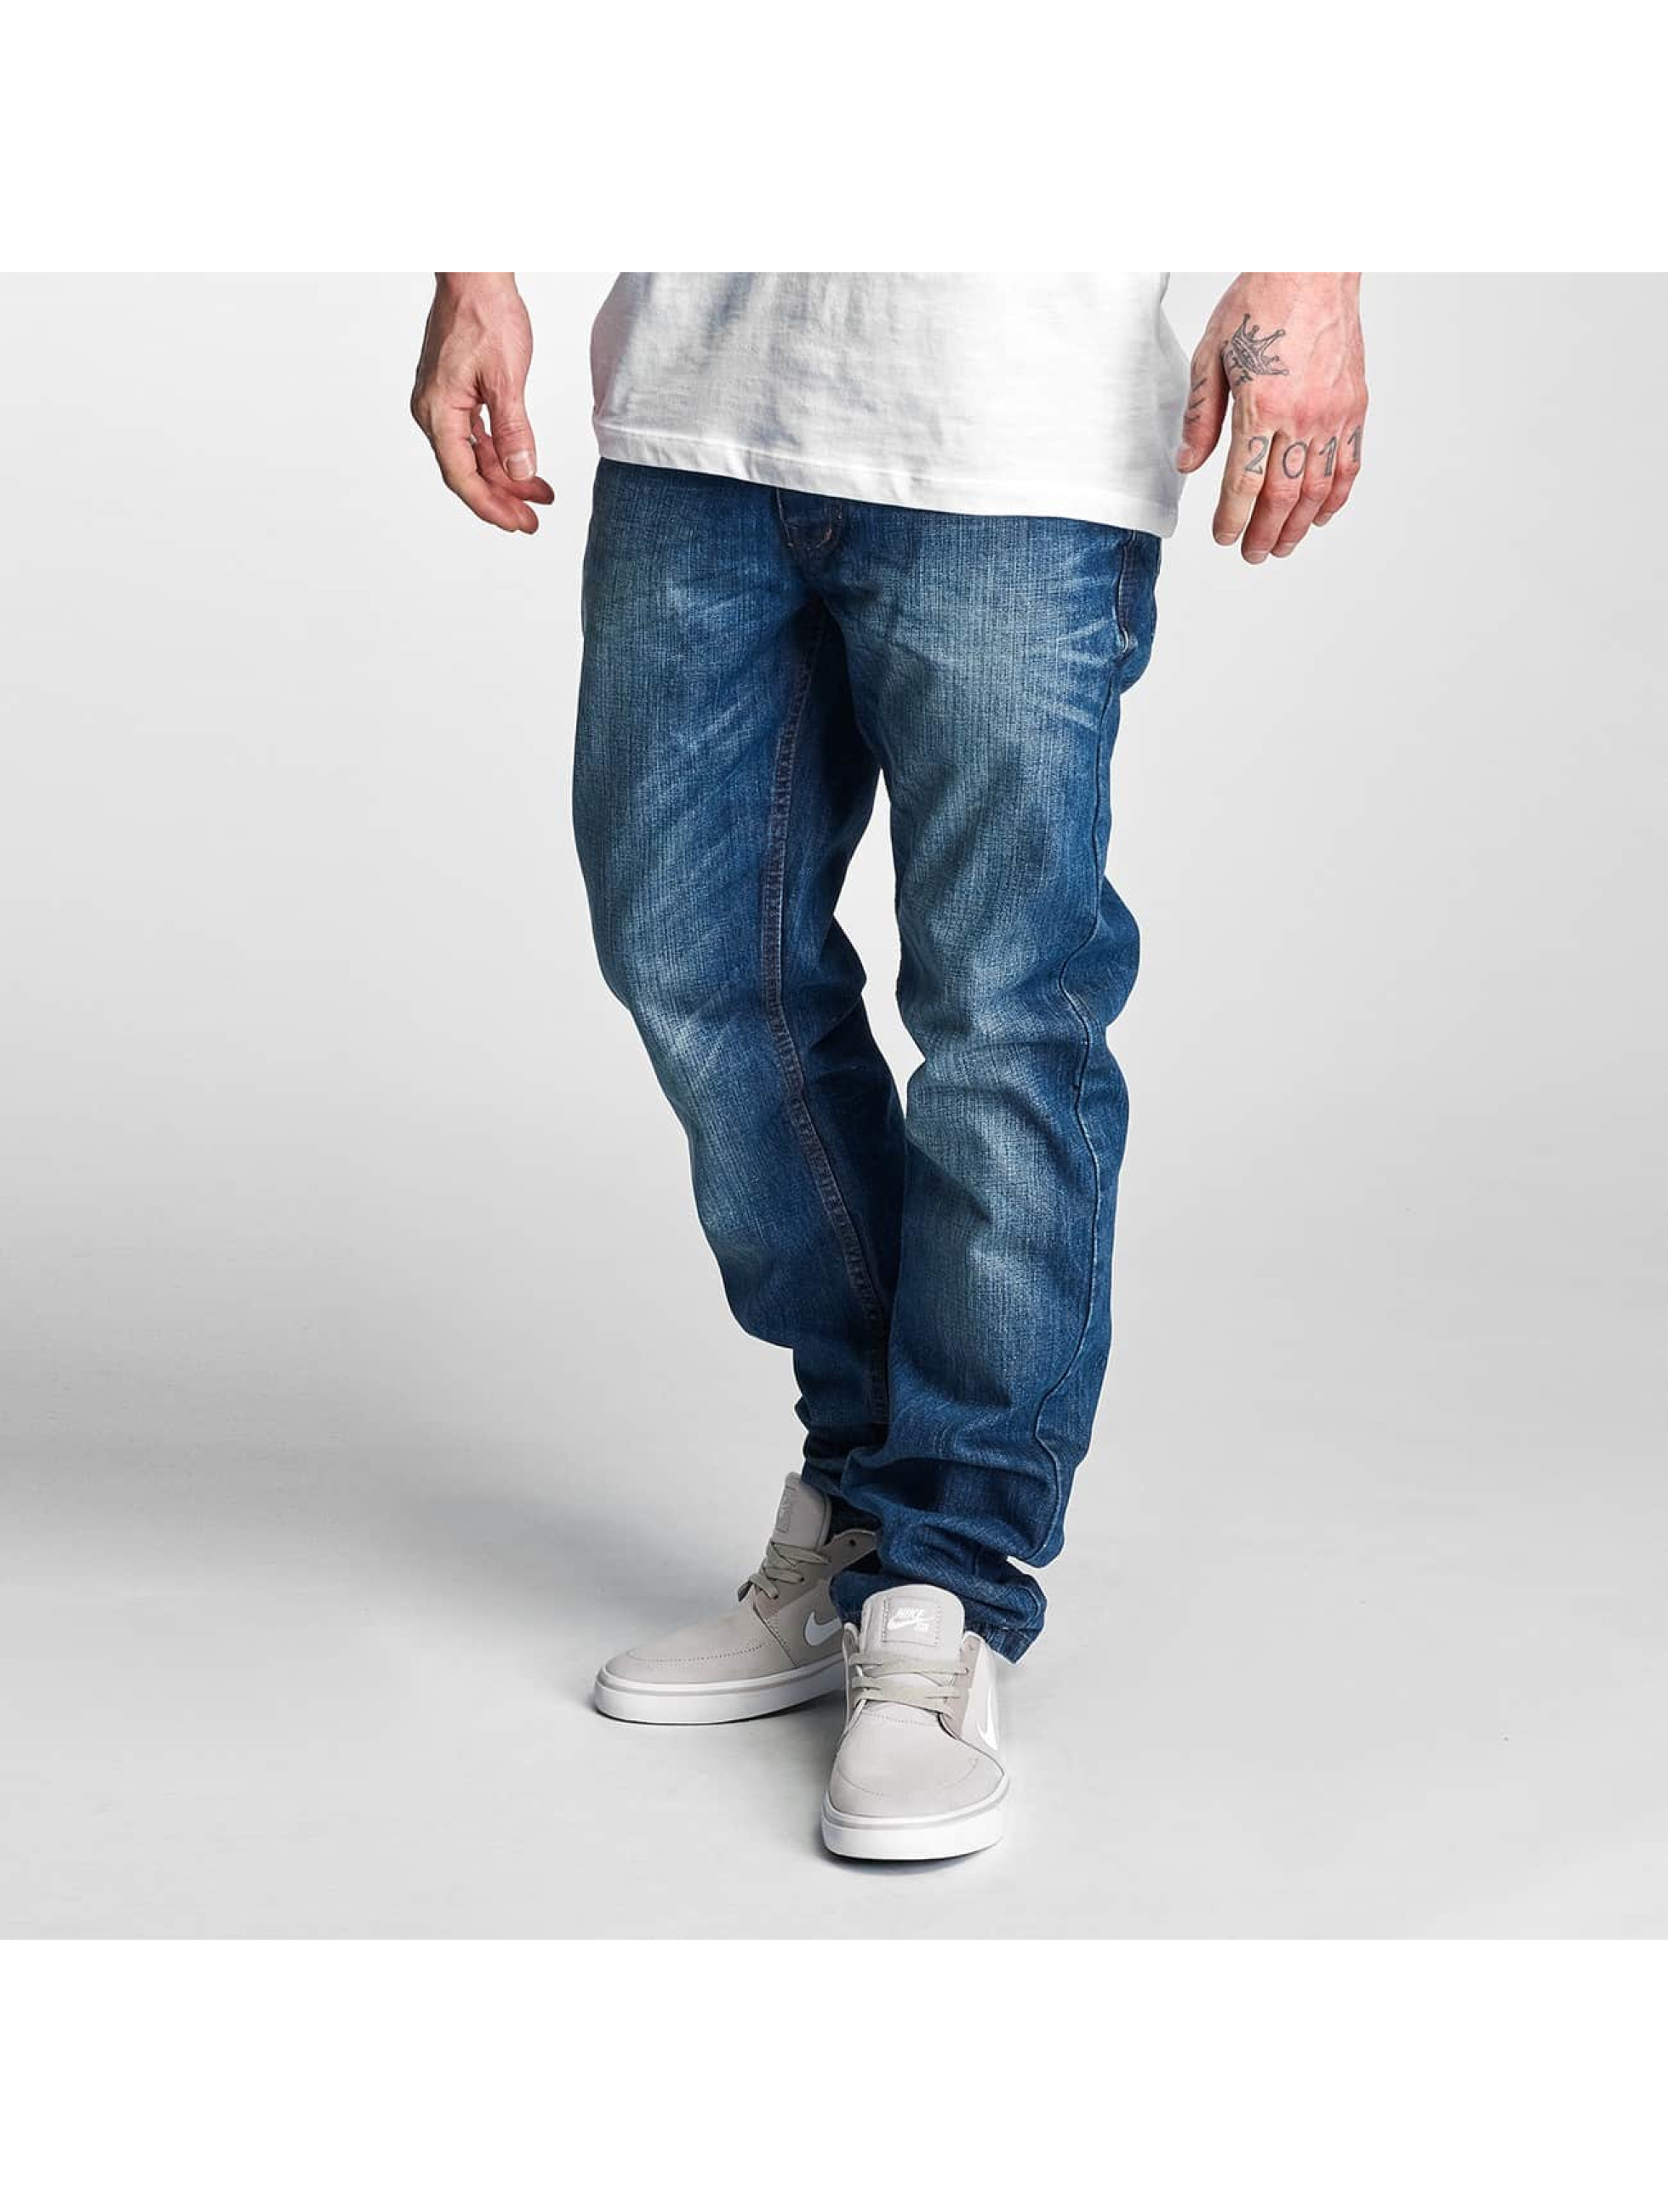 rocawear herren jeans straight fit jeans relaxed ebay. Black Bedroom Furniture Sets. Home Design Ideas